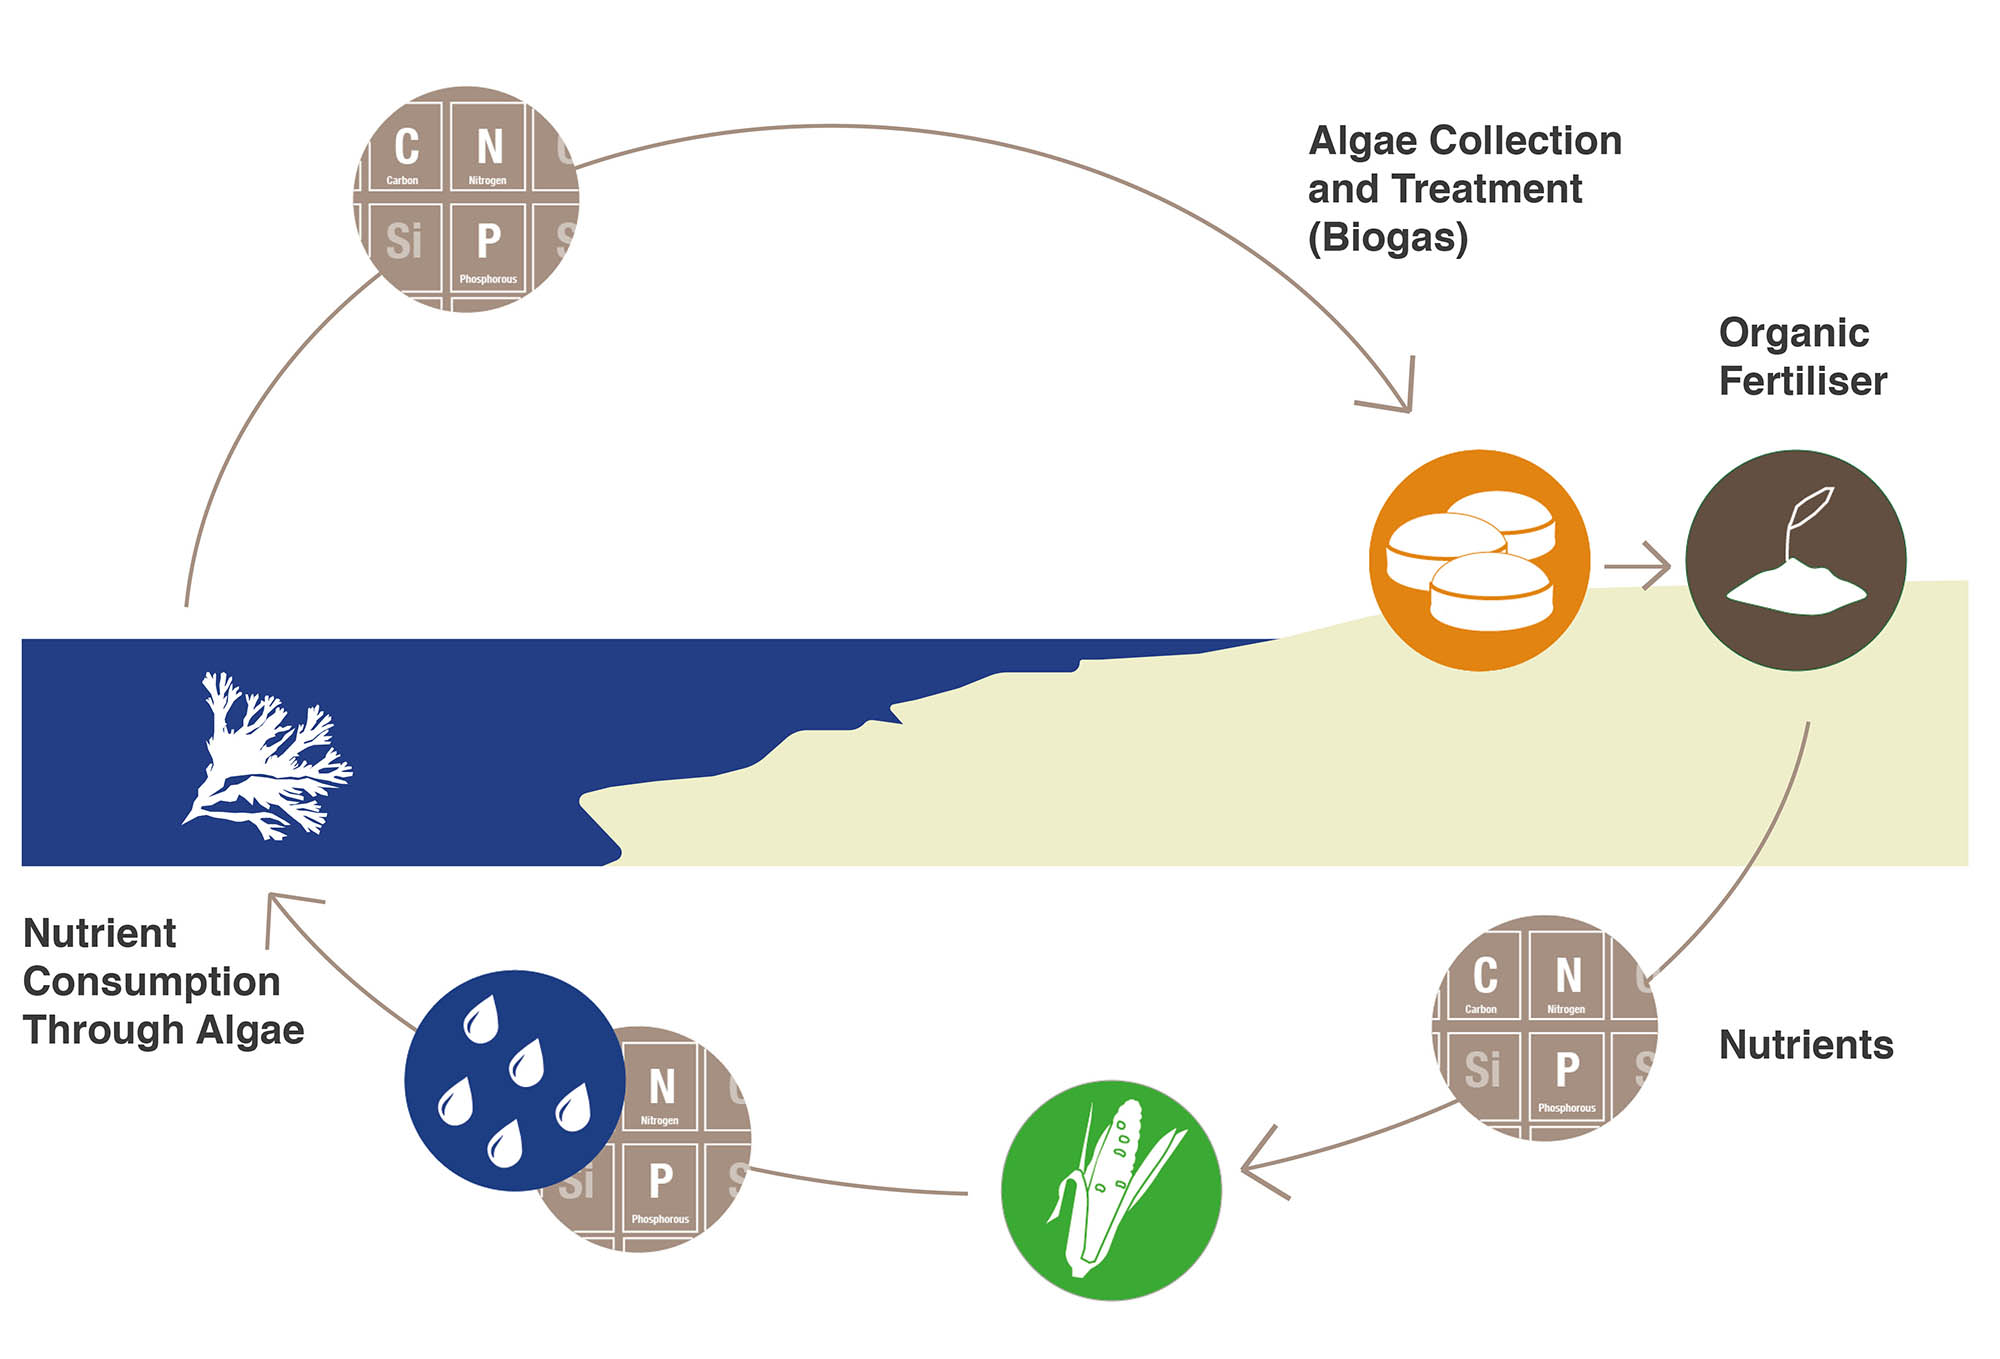 The image shows the concept of nutrient recycling through the use of algae.